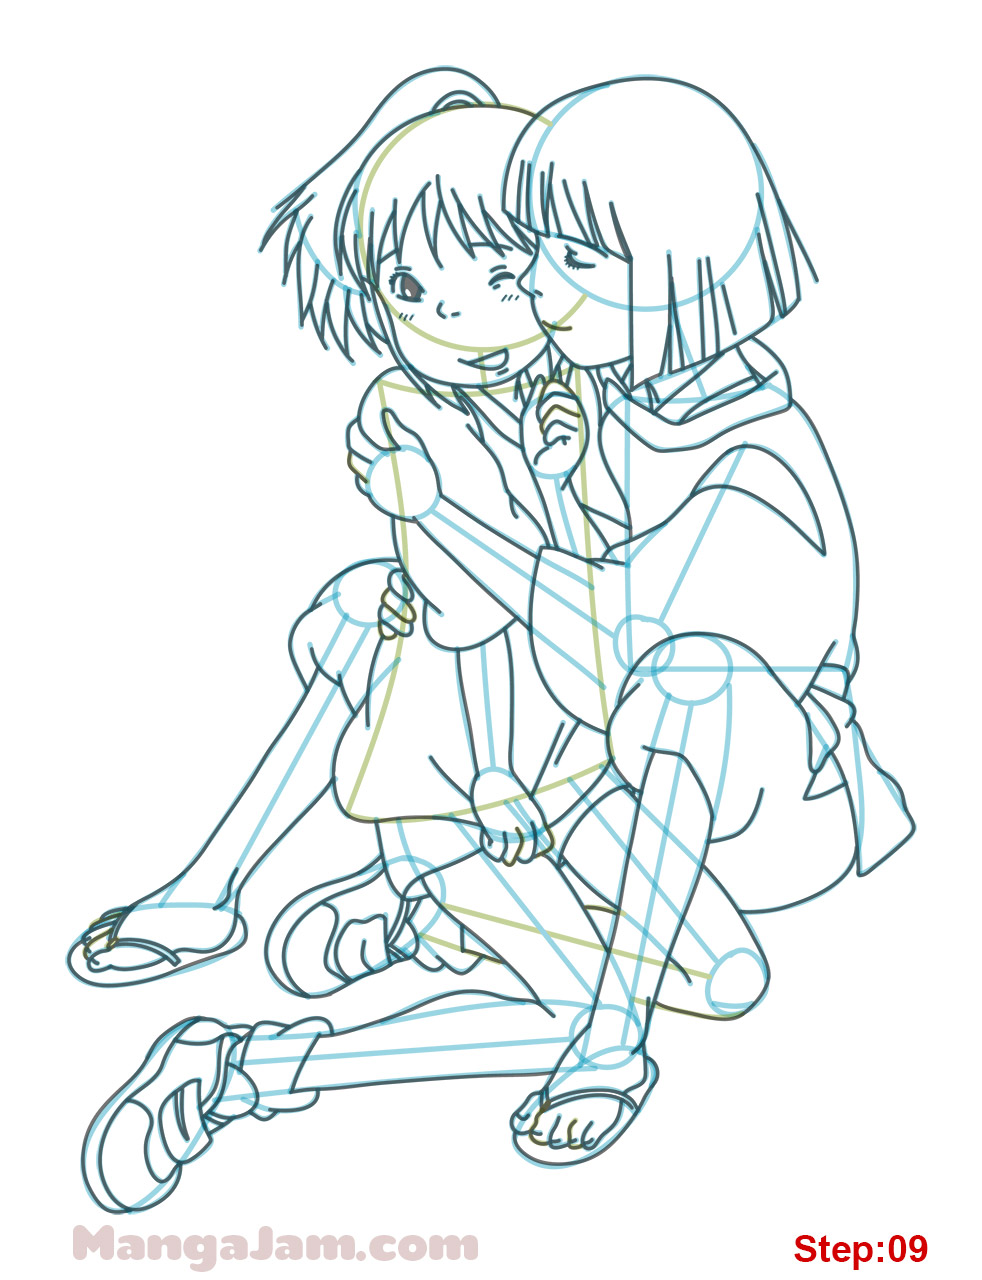 How To Draw Chihiro And Haku From Spirited Away Mangajam Com